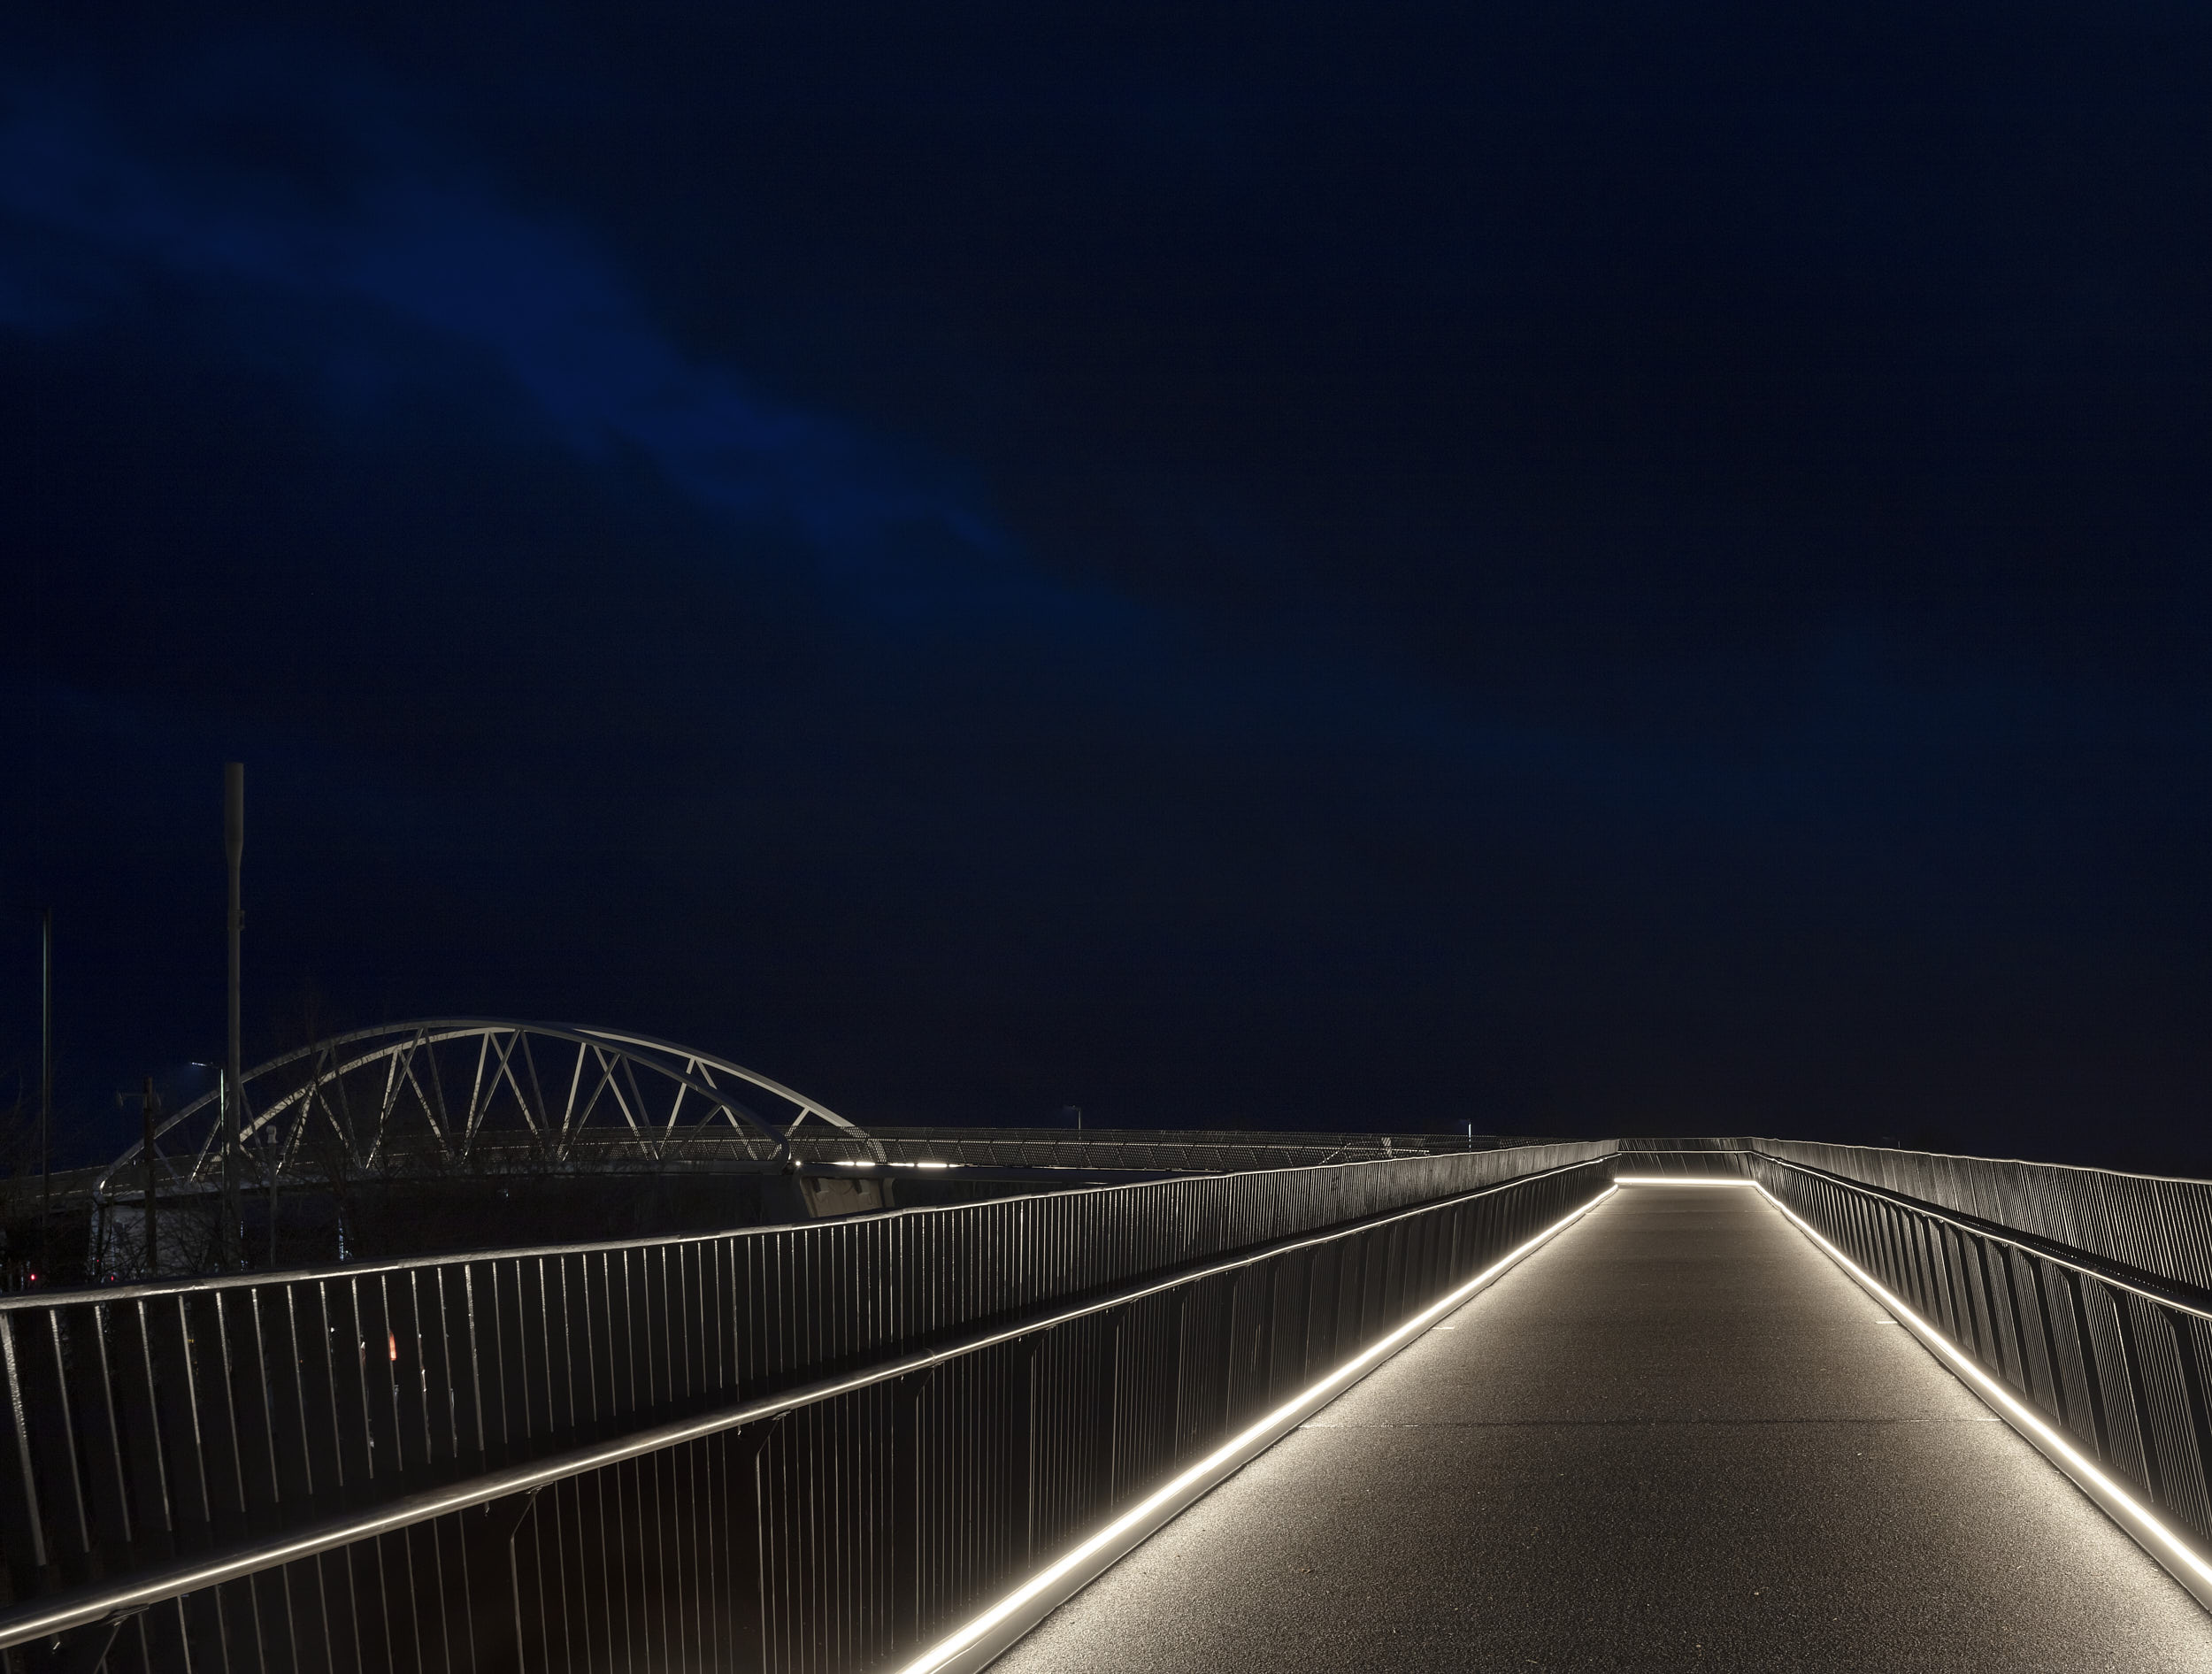 The bridge length and design of the lighting creates an extraordinary cinematic experience.